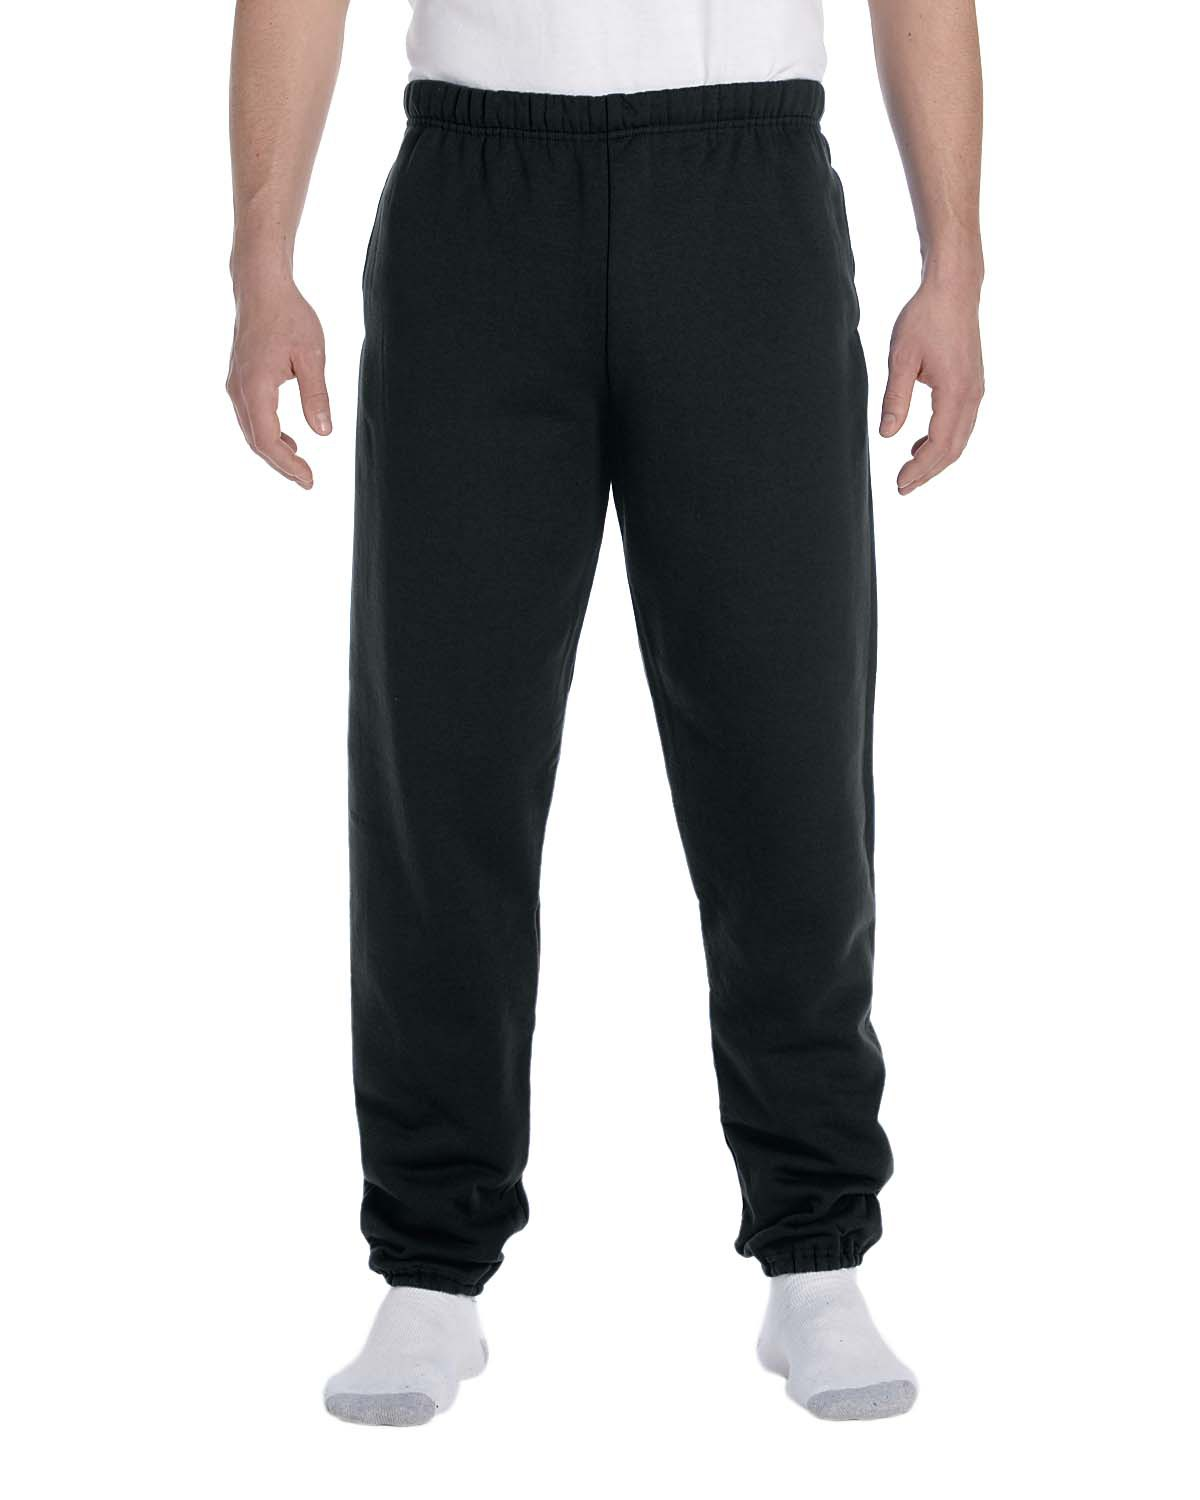 Jerzees 4850P Adult Super Sweats NuBlend Fleece Pocketed Sweatpants